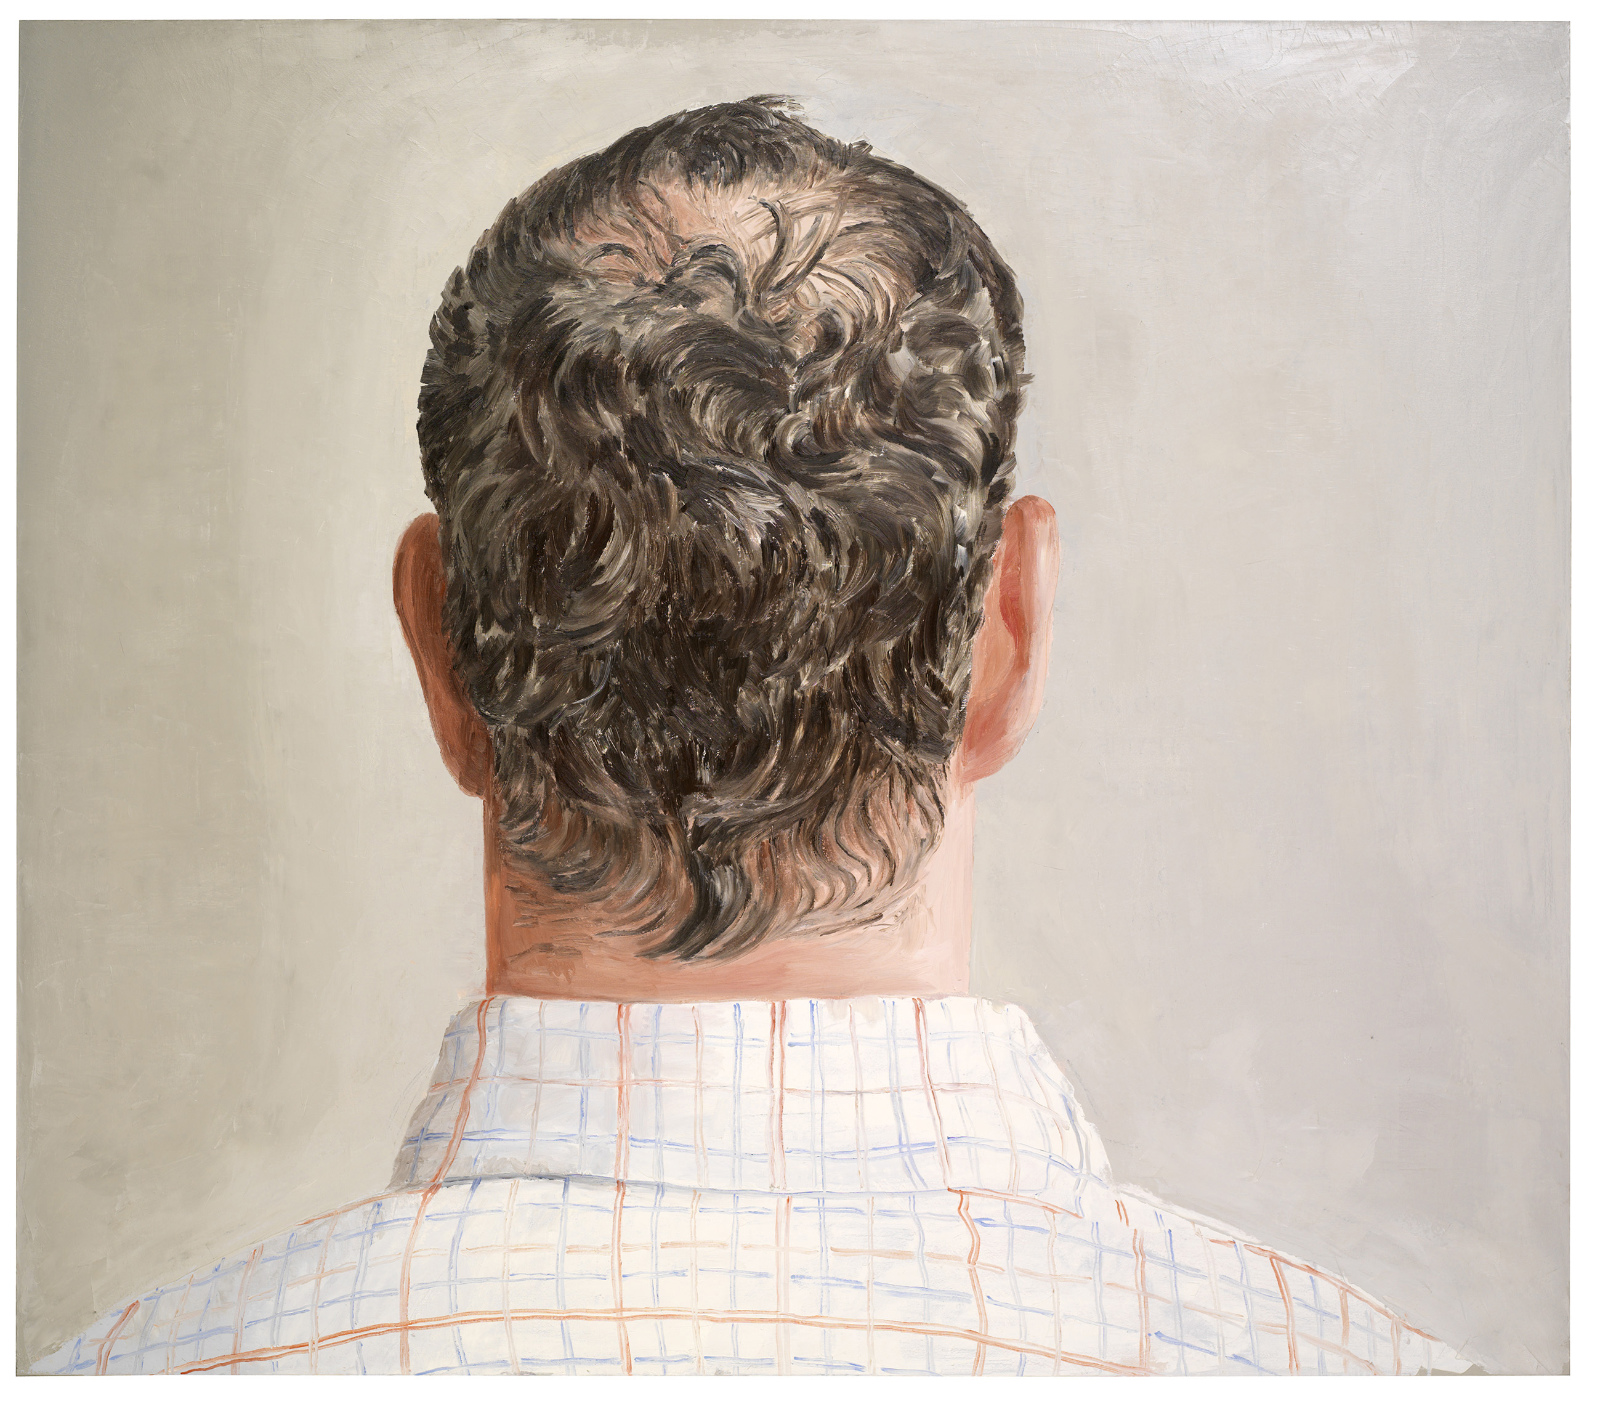 "Thorbjørn Sørensen, ""Bakhode"" (Back of Head), 2013, oil on canvas, 175 x 200 cm"